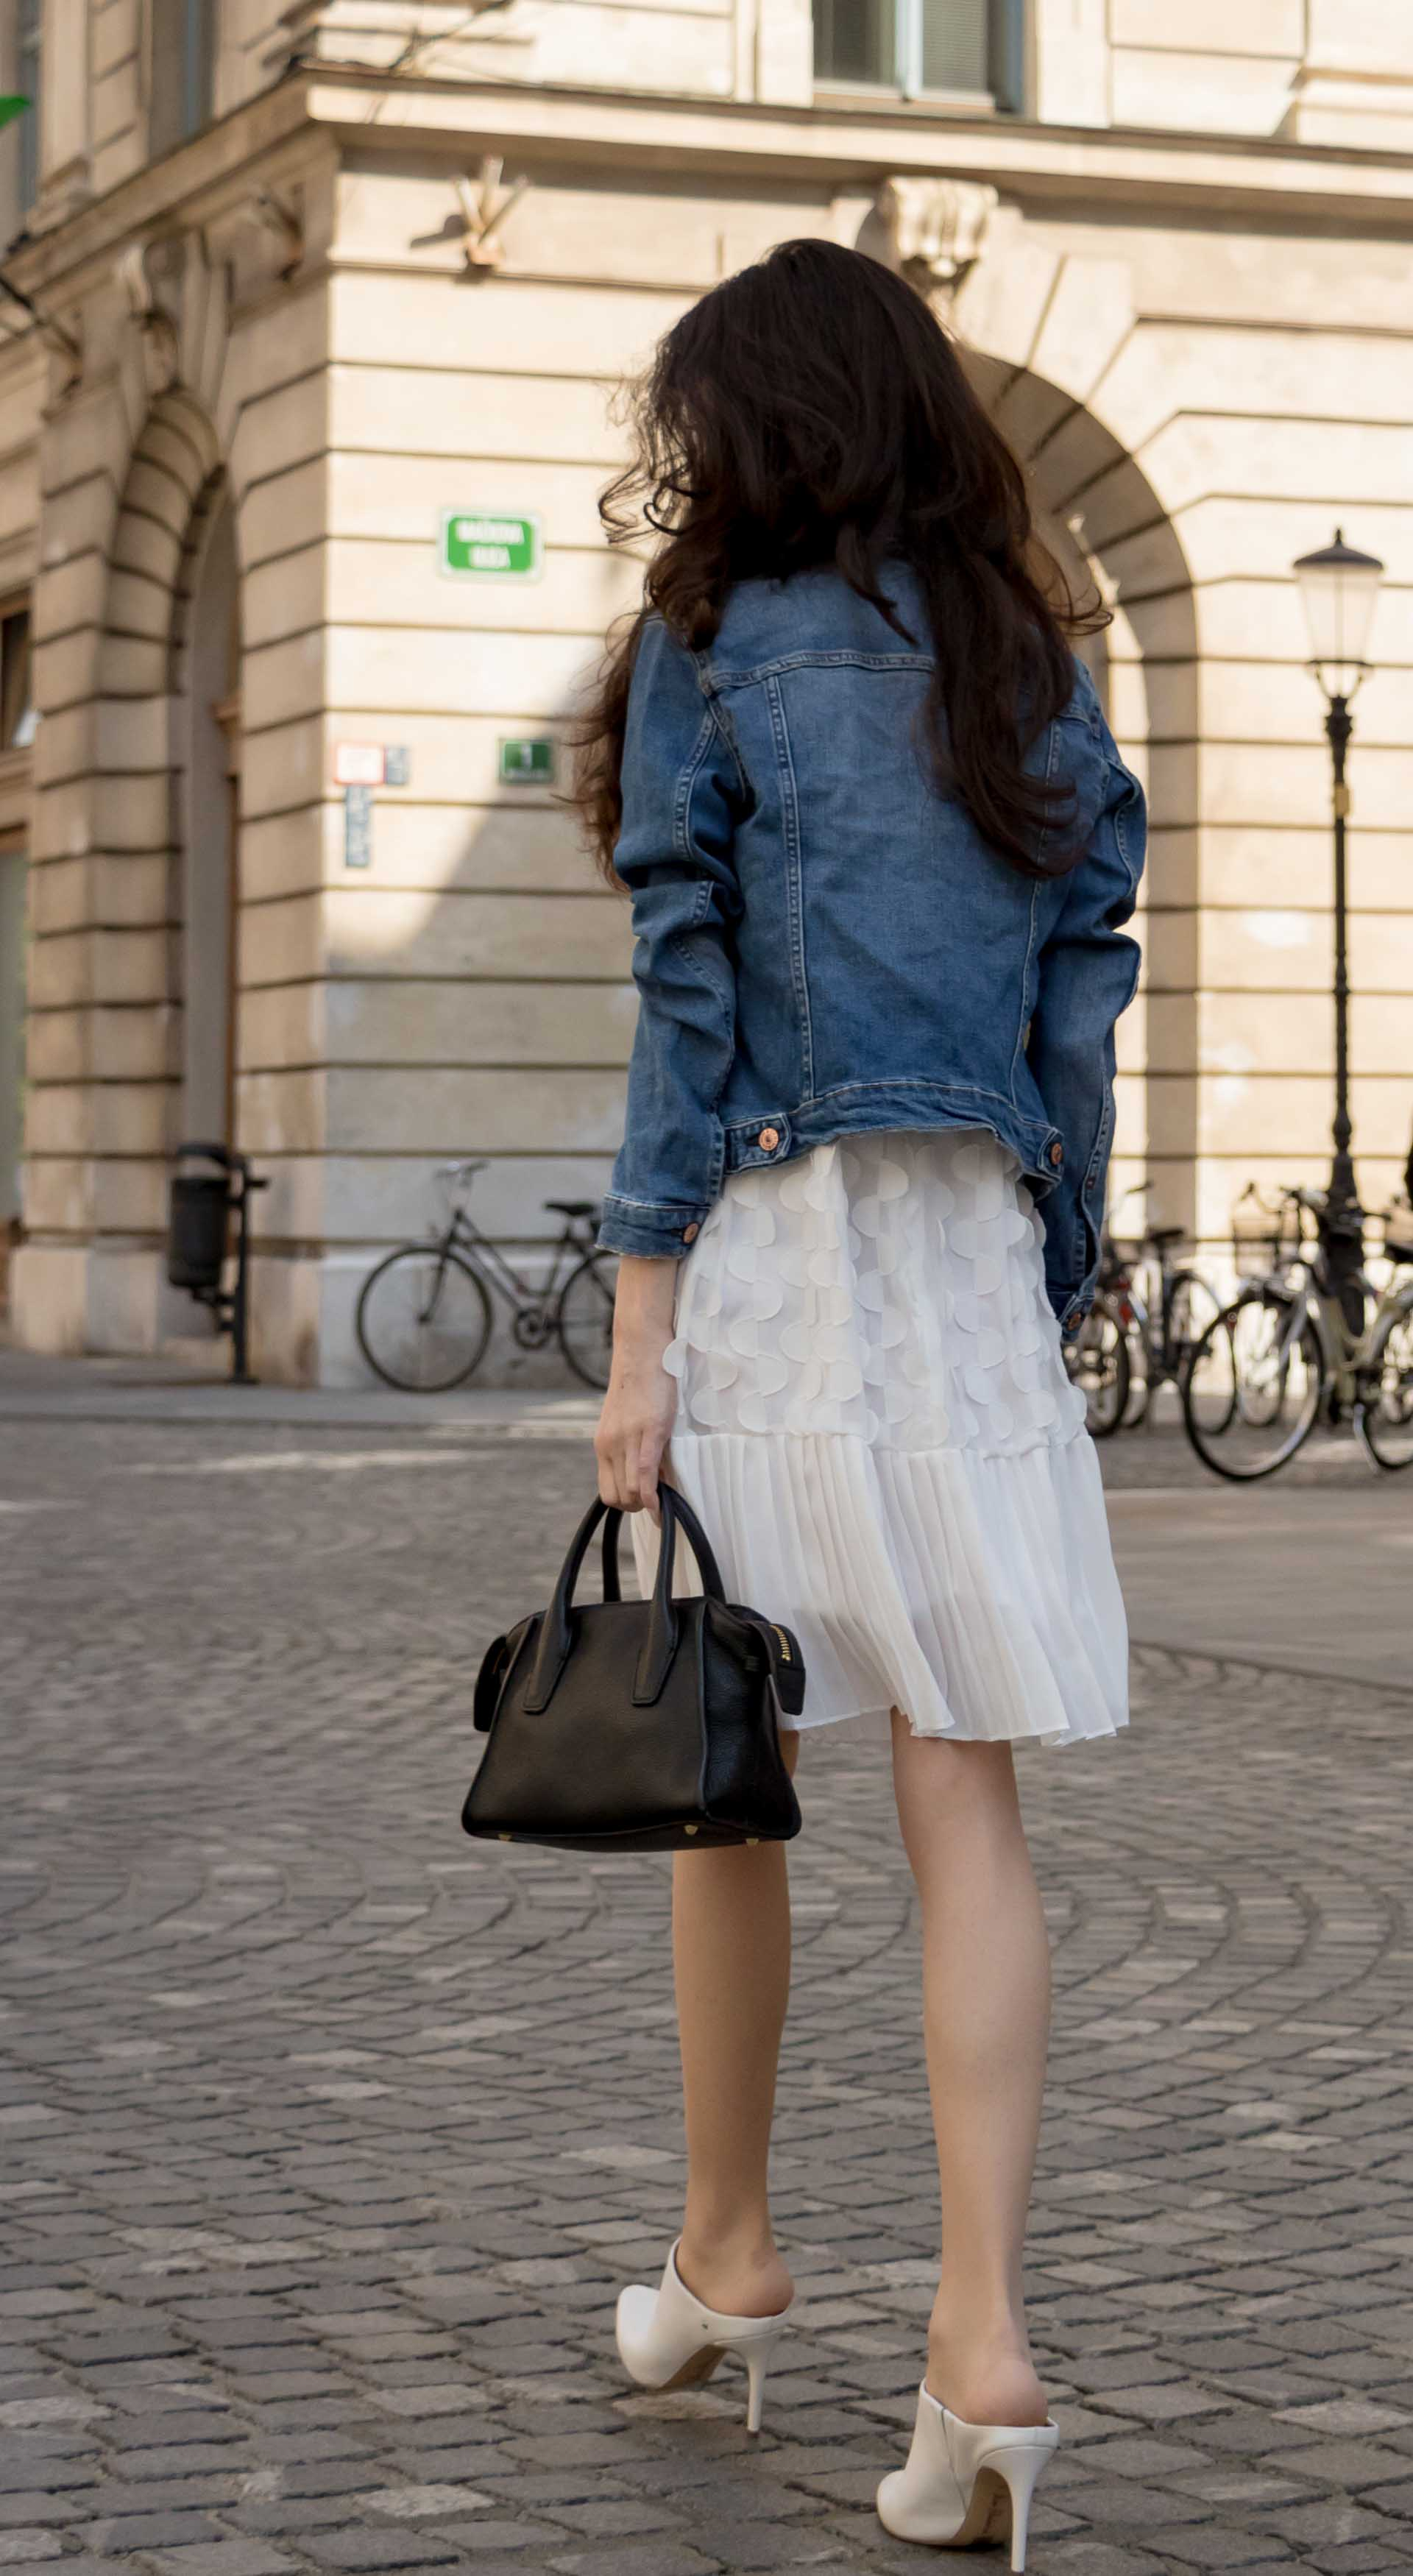 Veronika Lipar Fashion Editor of Brunette from Wall Street wearing H&M blue denim jacket, Storets white pleated short dress, white mules and Adam Selman x Le Specs white cat eye Lolita sunglasses, black small bag walking on the street